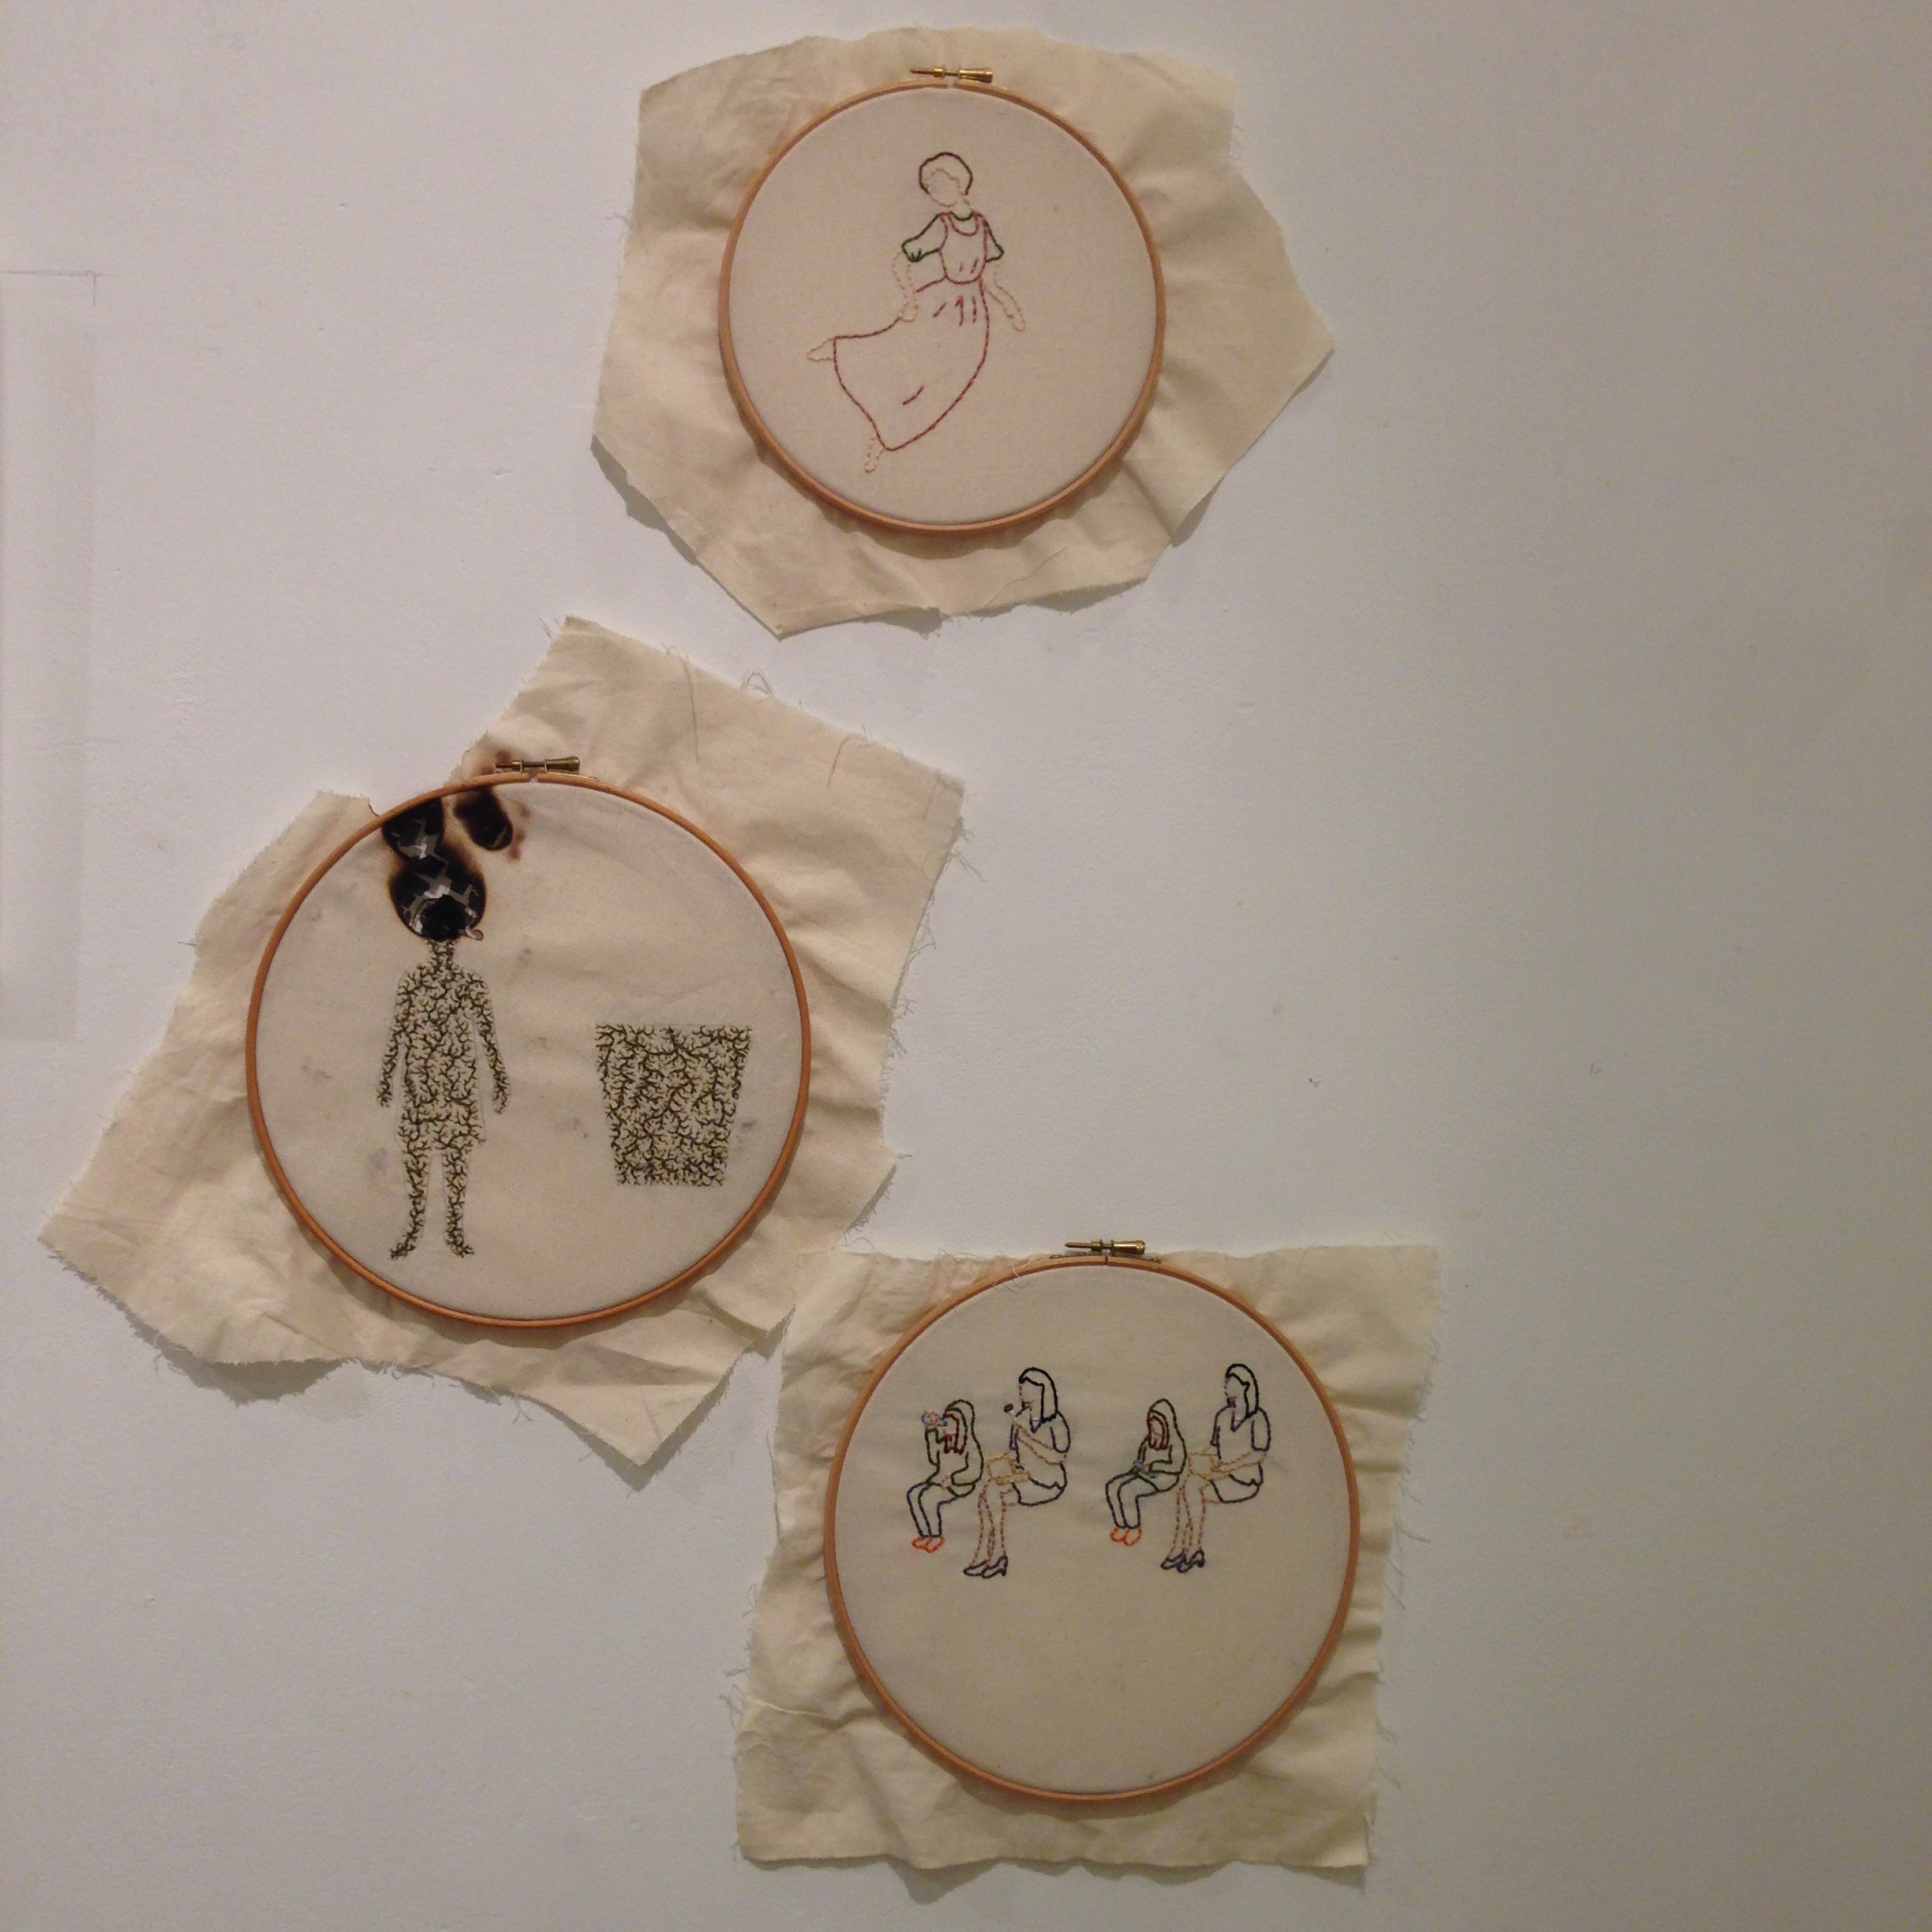 Embroideries, including a burnt one.